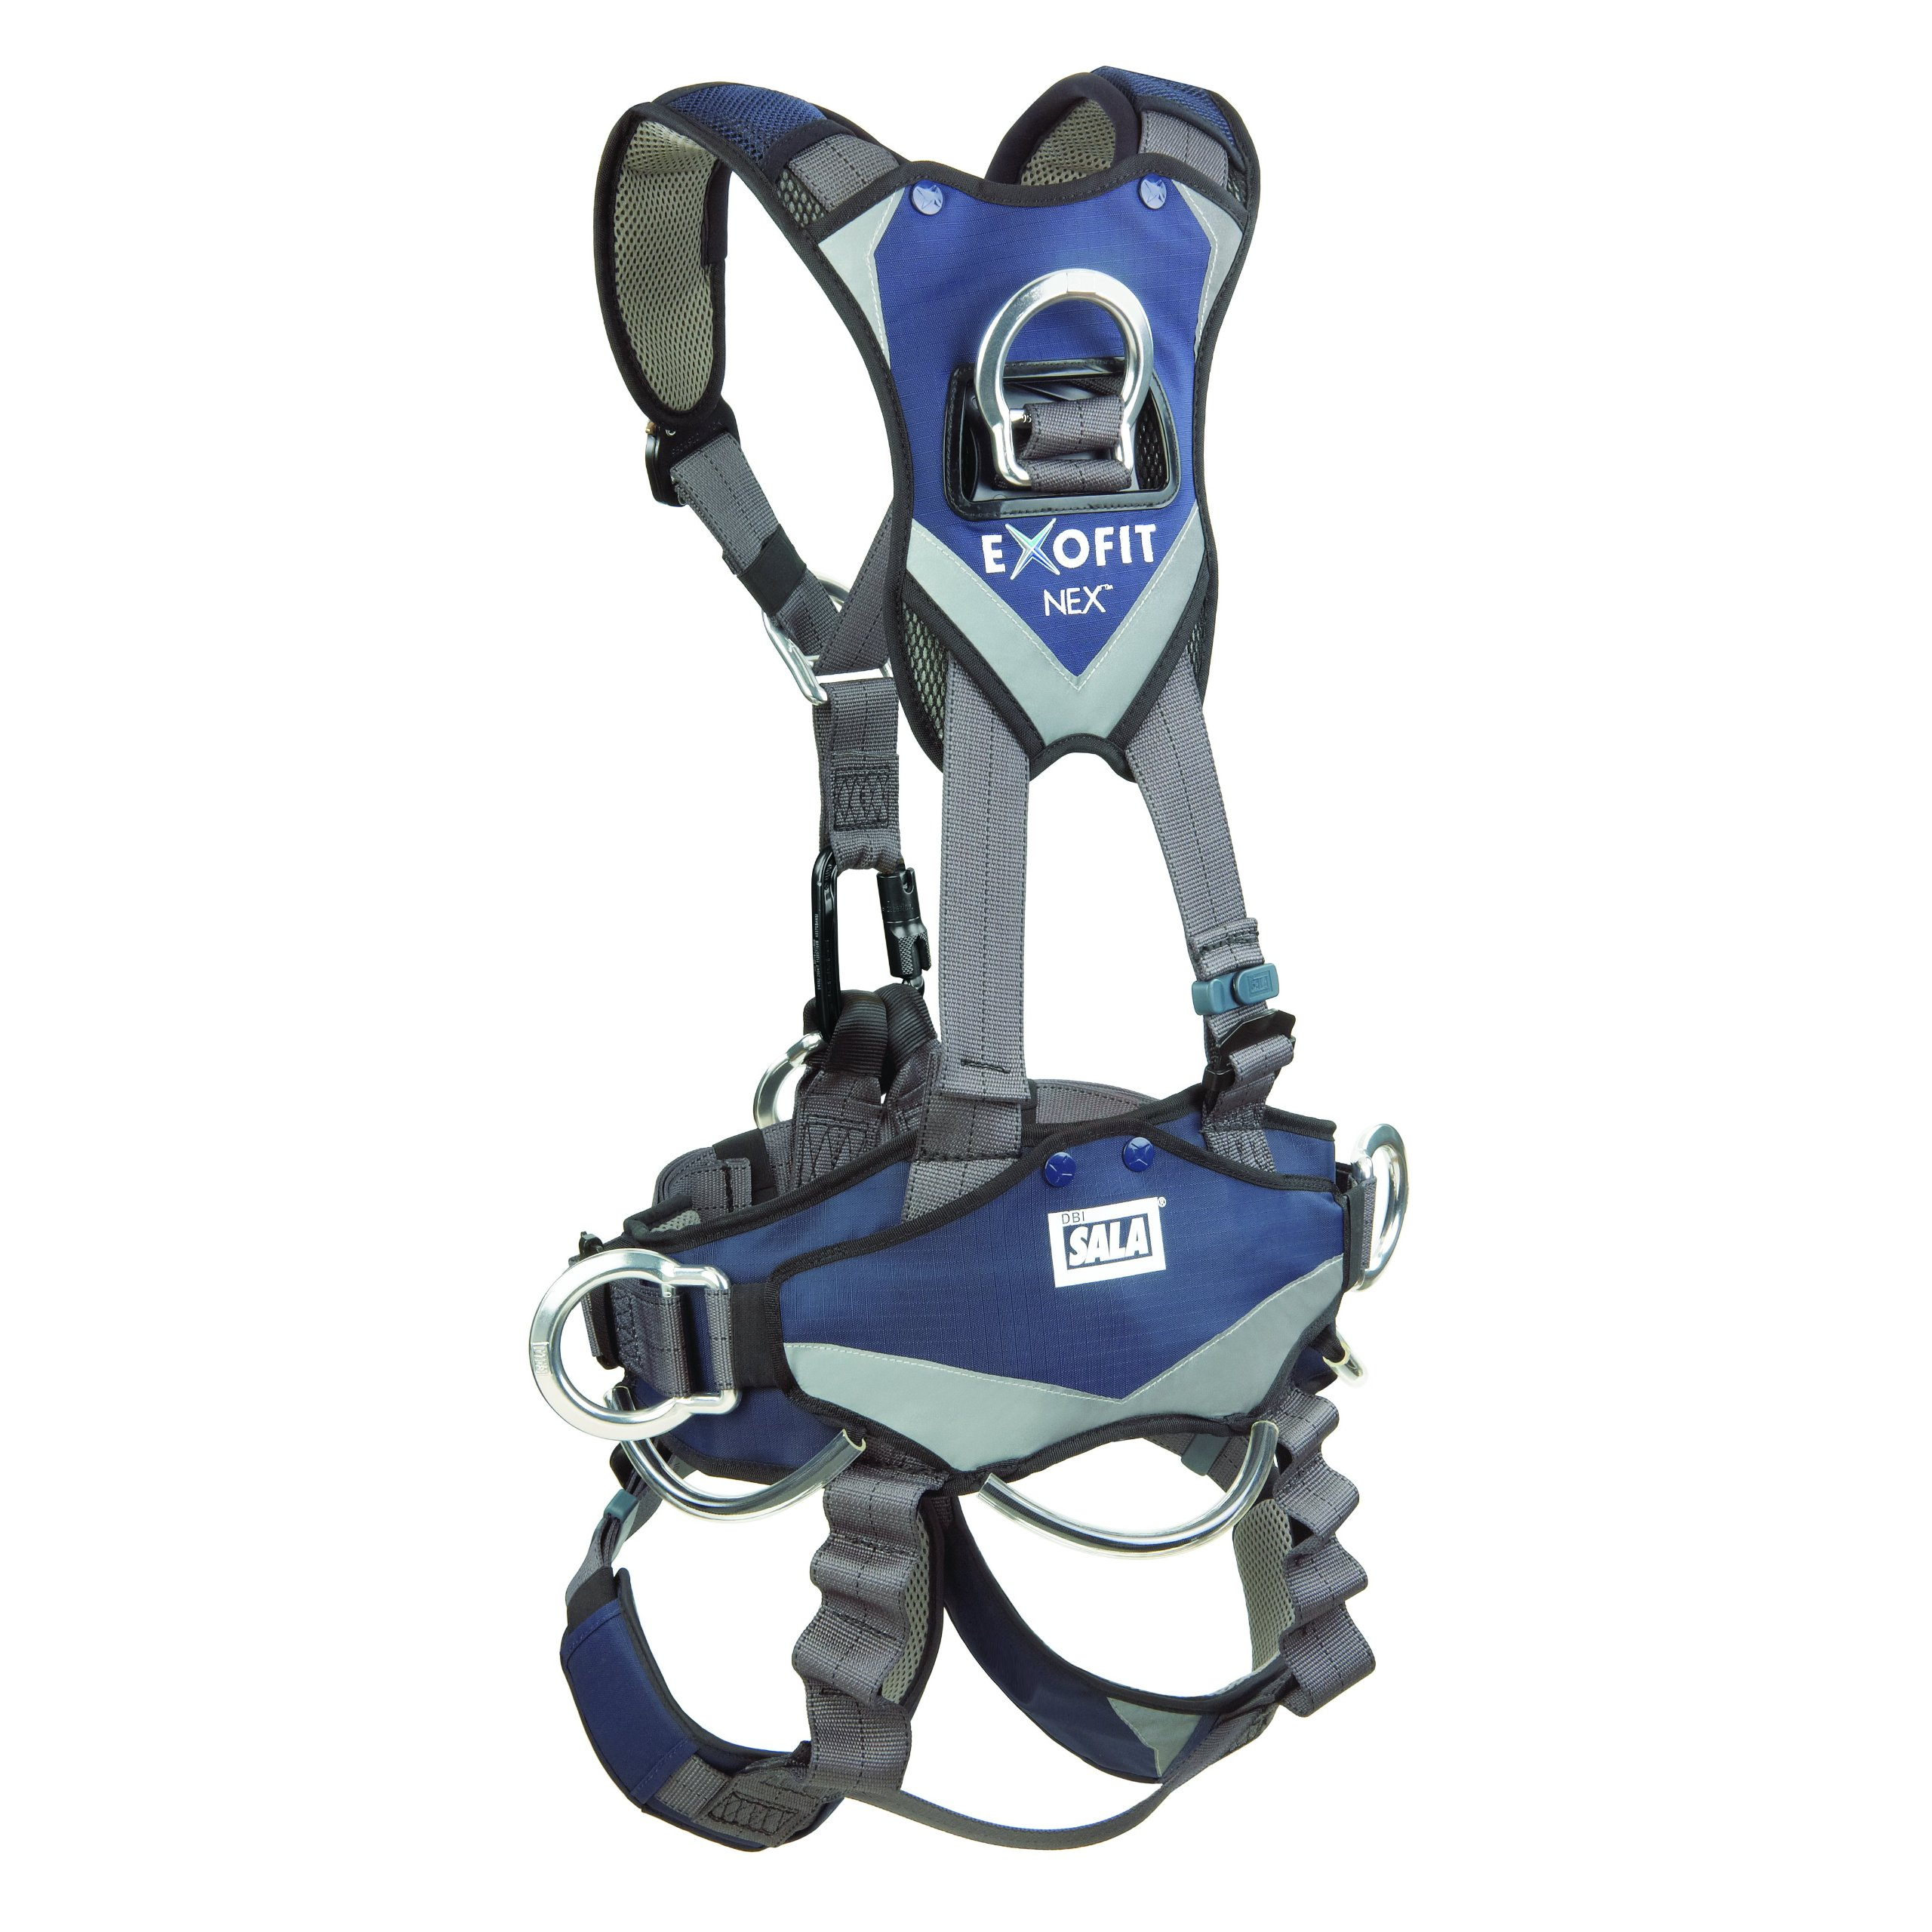 3M DBI-SALA ExoFit NEX 1113346 Full Body Rope Access/Rescue Harness, Alum Back/Front/Suspension D-Rings, Belt w/ Pad/Side D-Rings, Locking QC Leg Straps, Medium, Blue/Grey by 3M Fall Protection Business (Image #2)